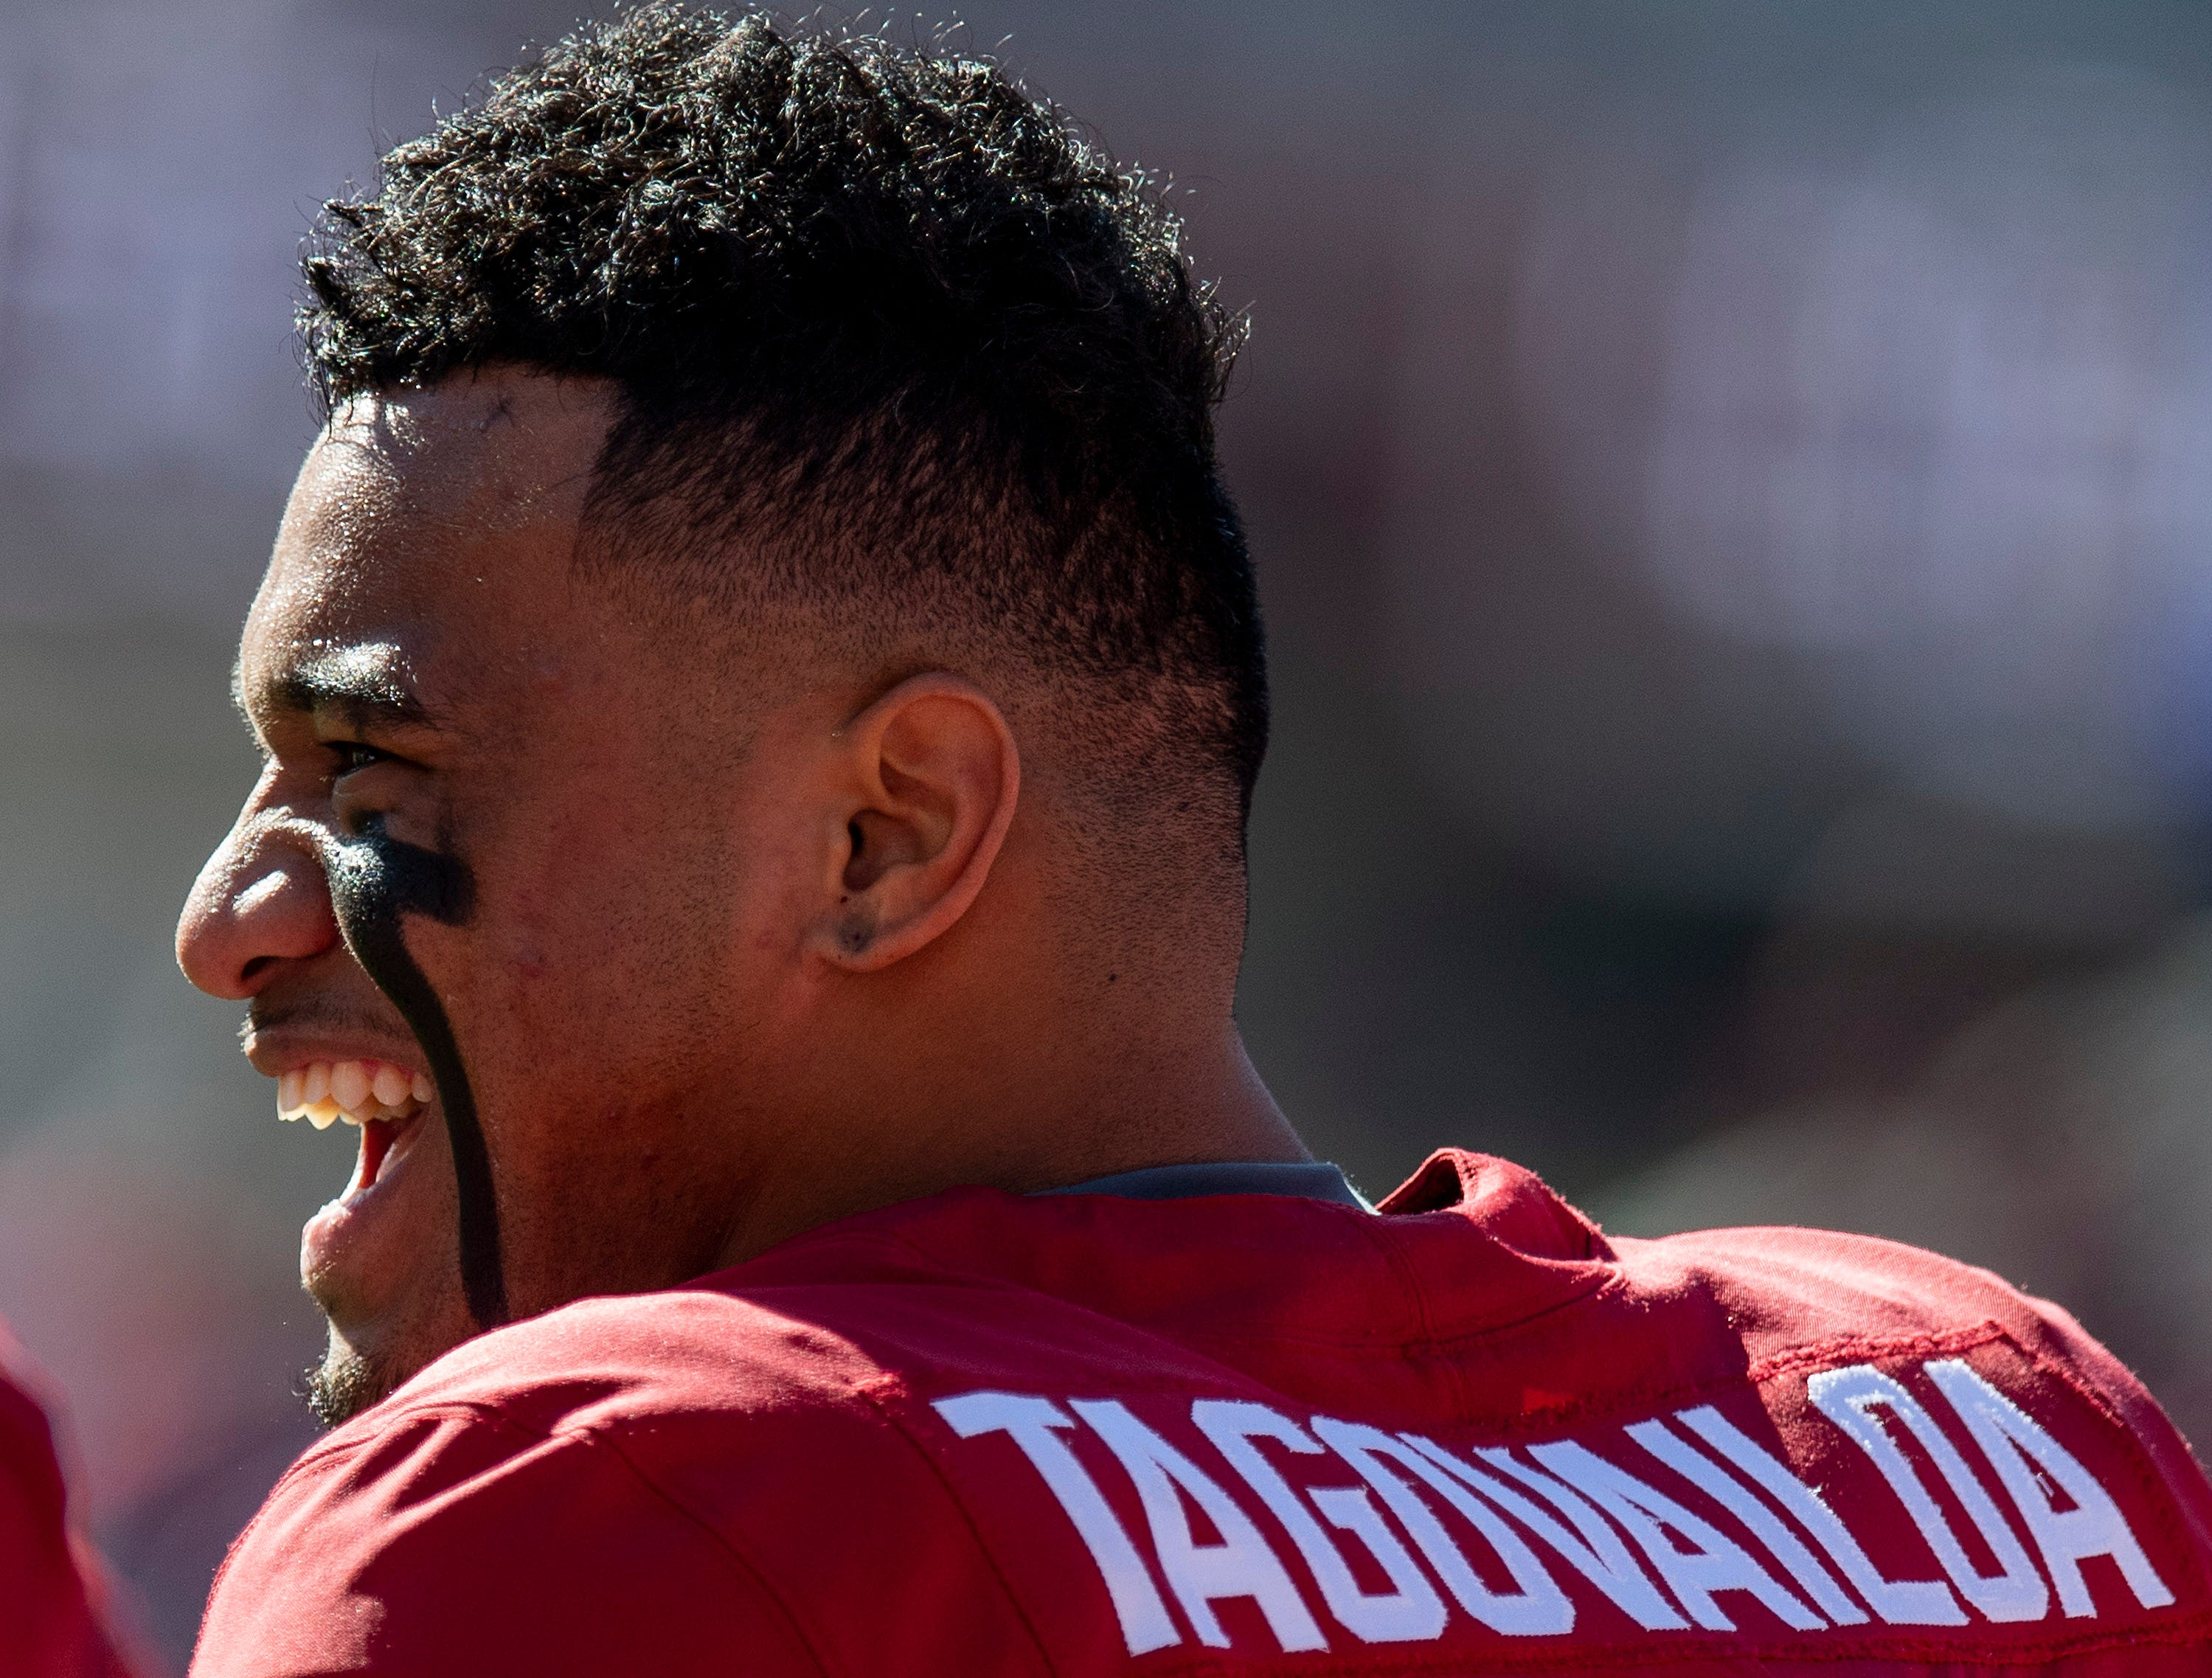 Alabama quarterback Tua Tagovailoa (13) during warm ups before the Alabama vs. Citadel game at Bryant-Denny Stadium in Tuscaloosa, Ala., on Saturday November 17, 2018.